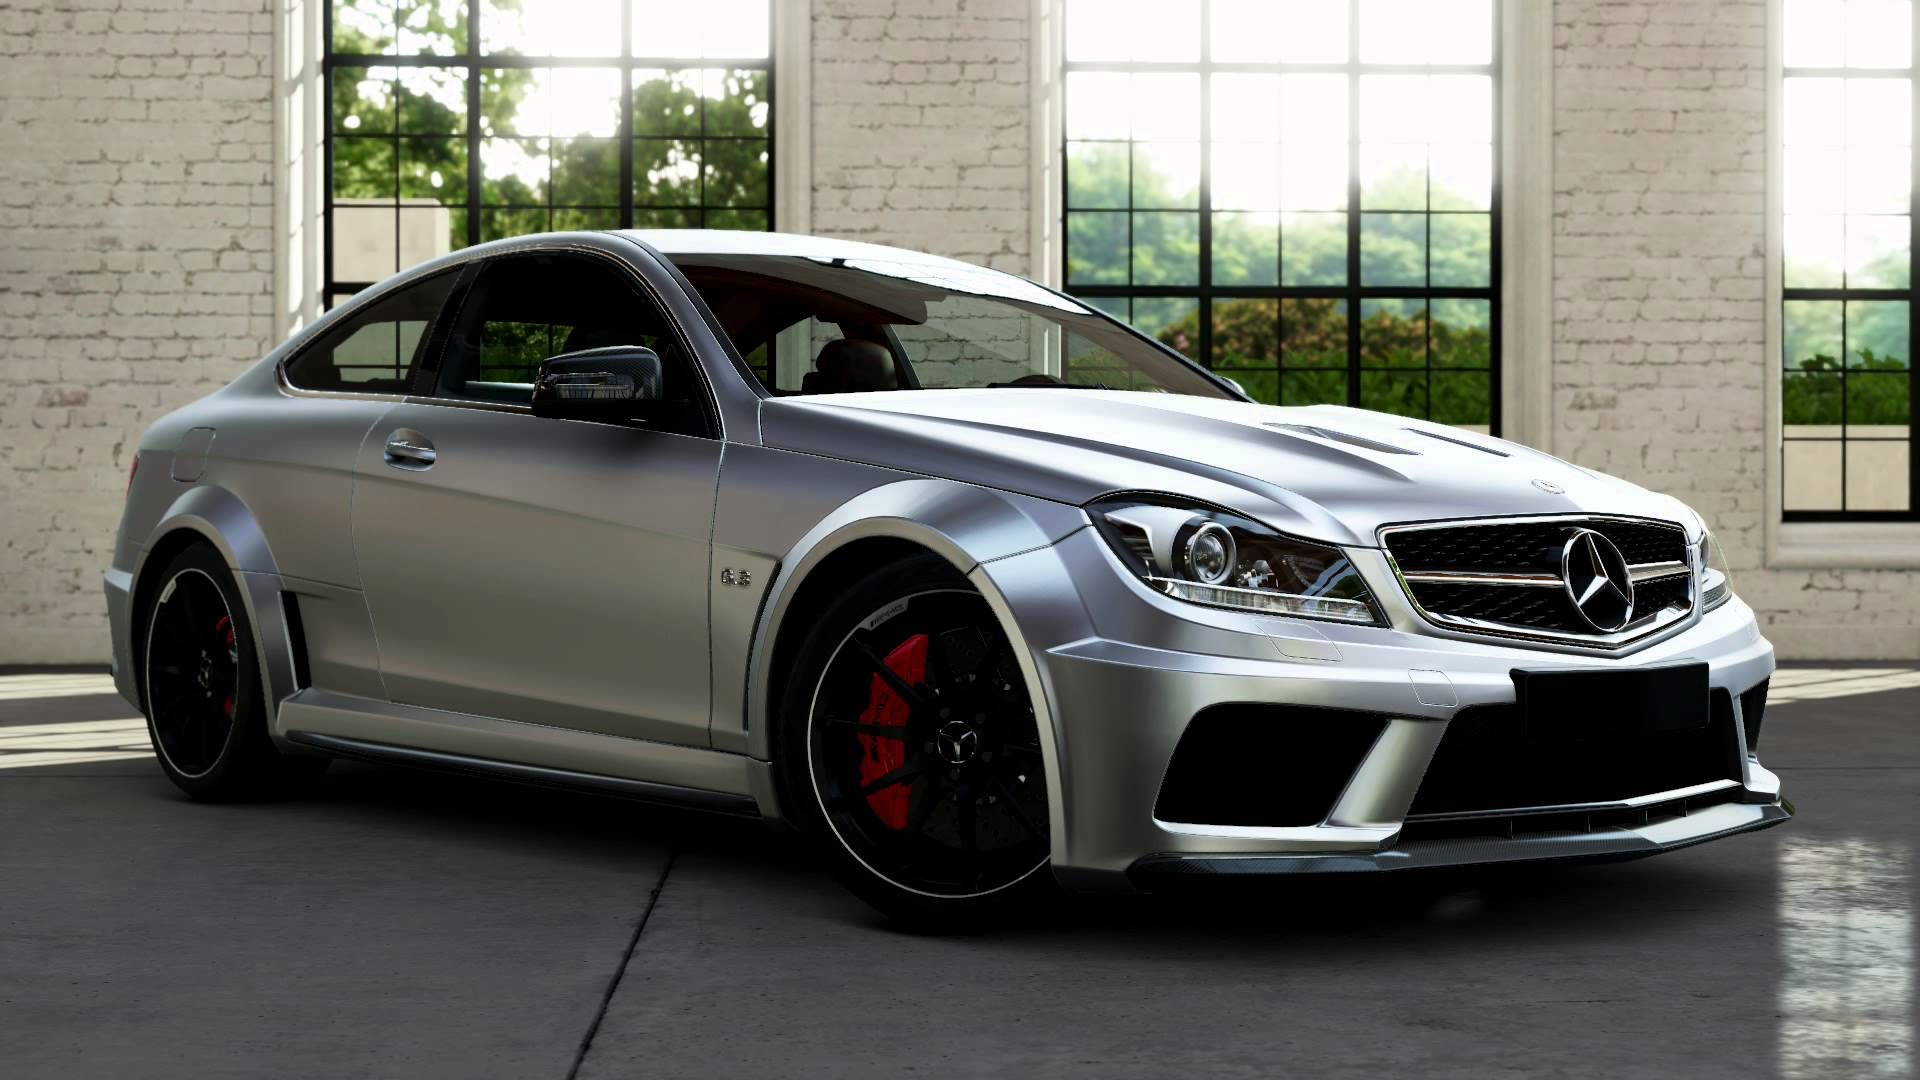 C63 amg black series brabus recherche google best for Mercedes benz c63 amg black edition